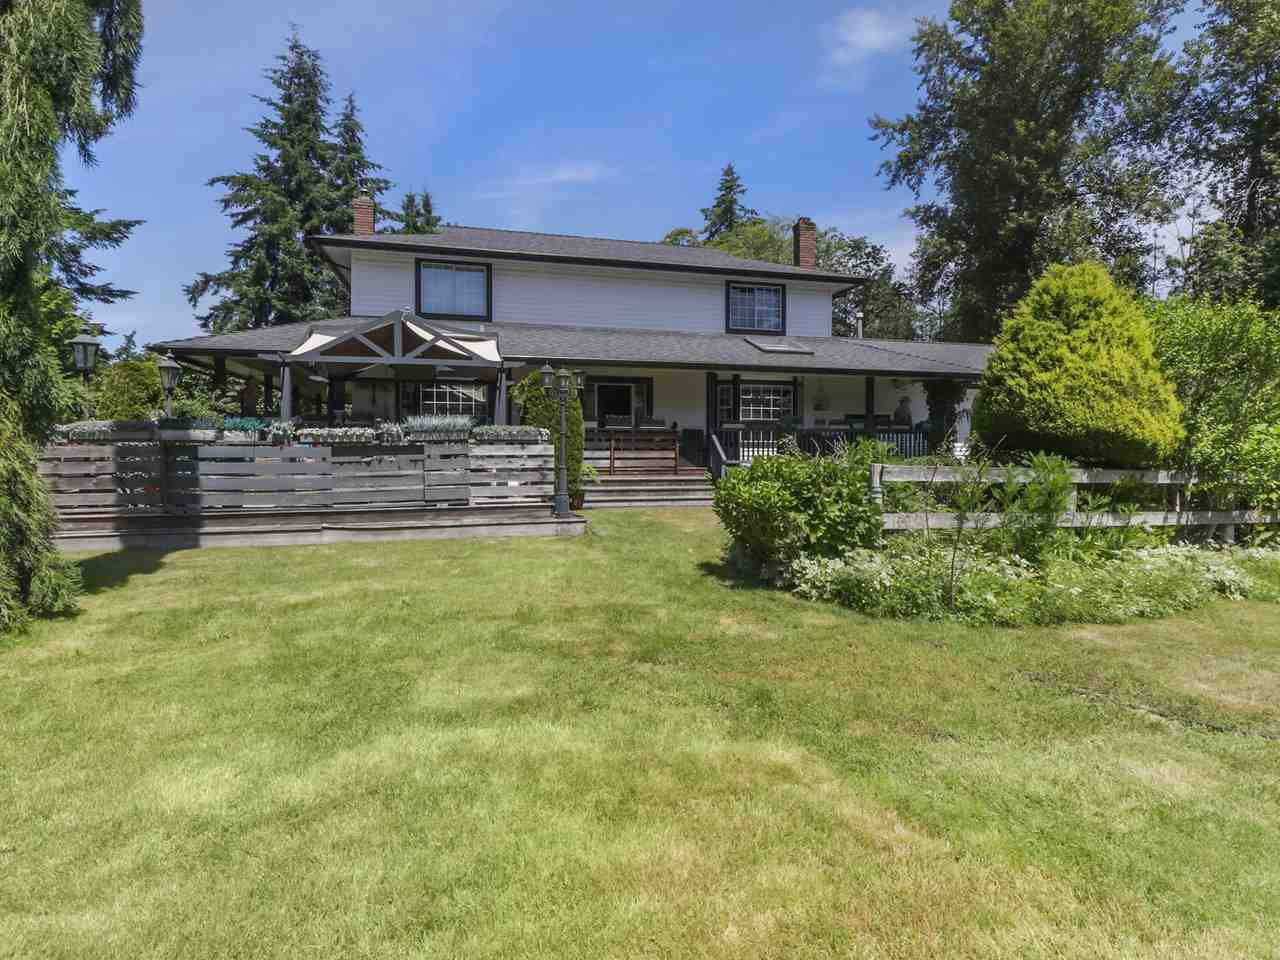 Photo 1: Photos: 13957 32 Avenue in Surrey: Elgin Chantrell House for sale (South Surrey White Rock)  : MLS®# R2466206